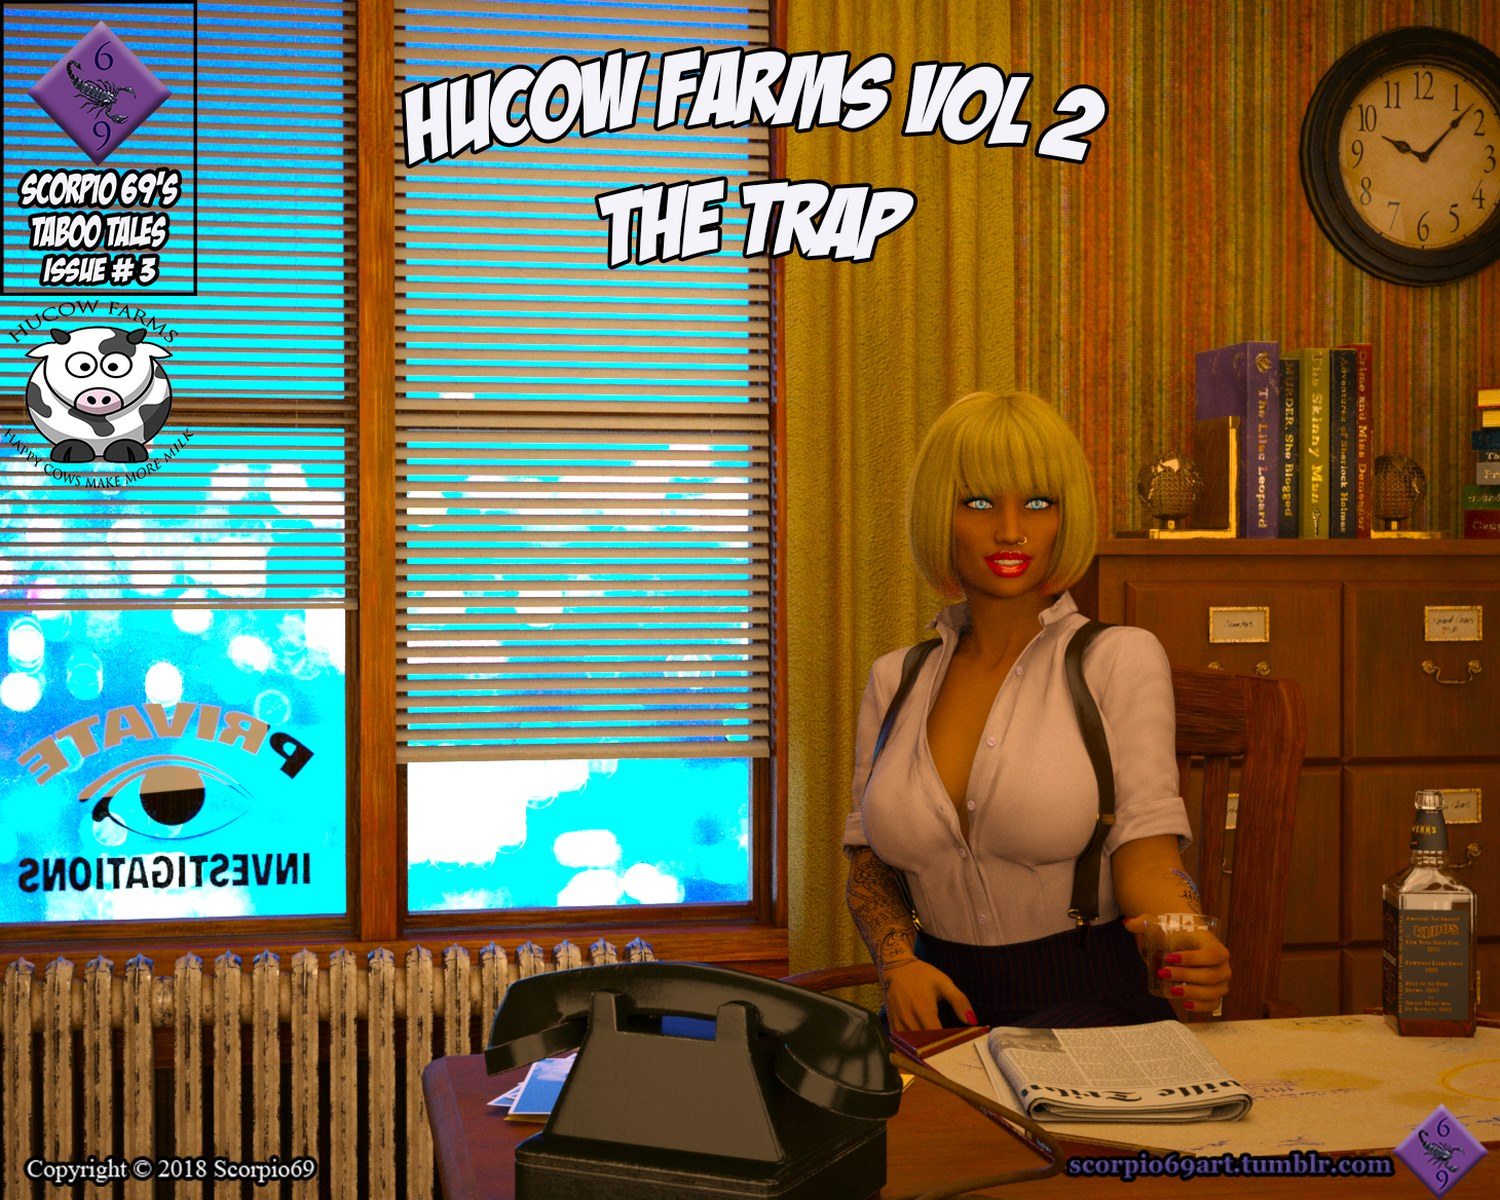 Hucow Farms Vol 2- The Trap by scorpio69